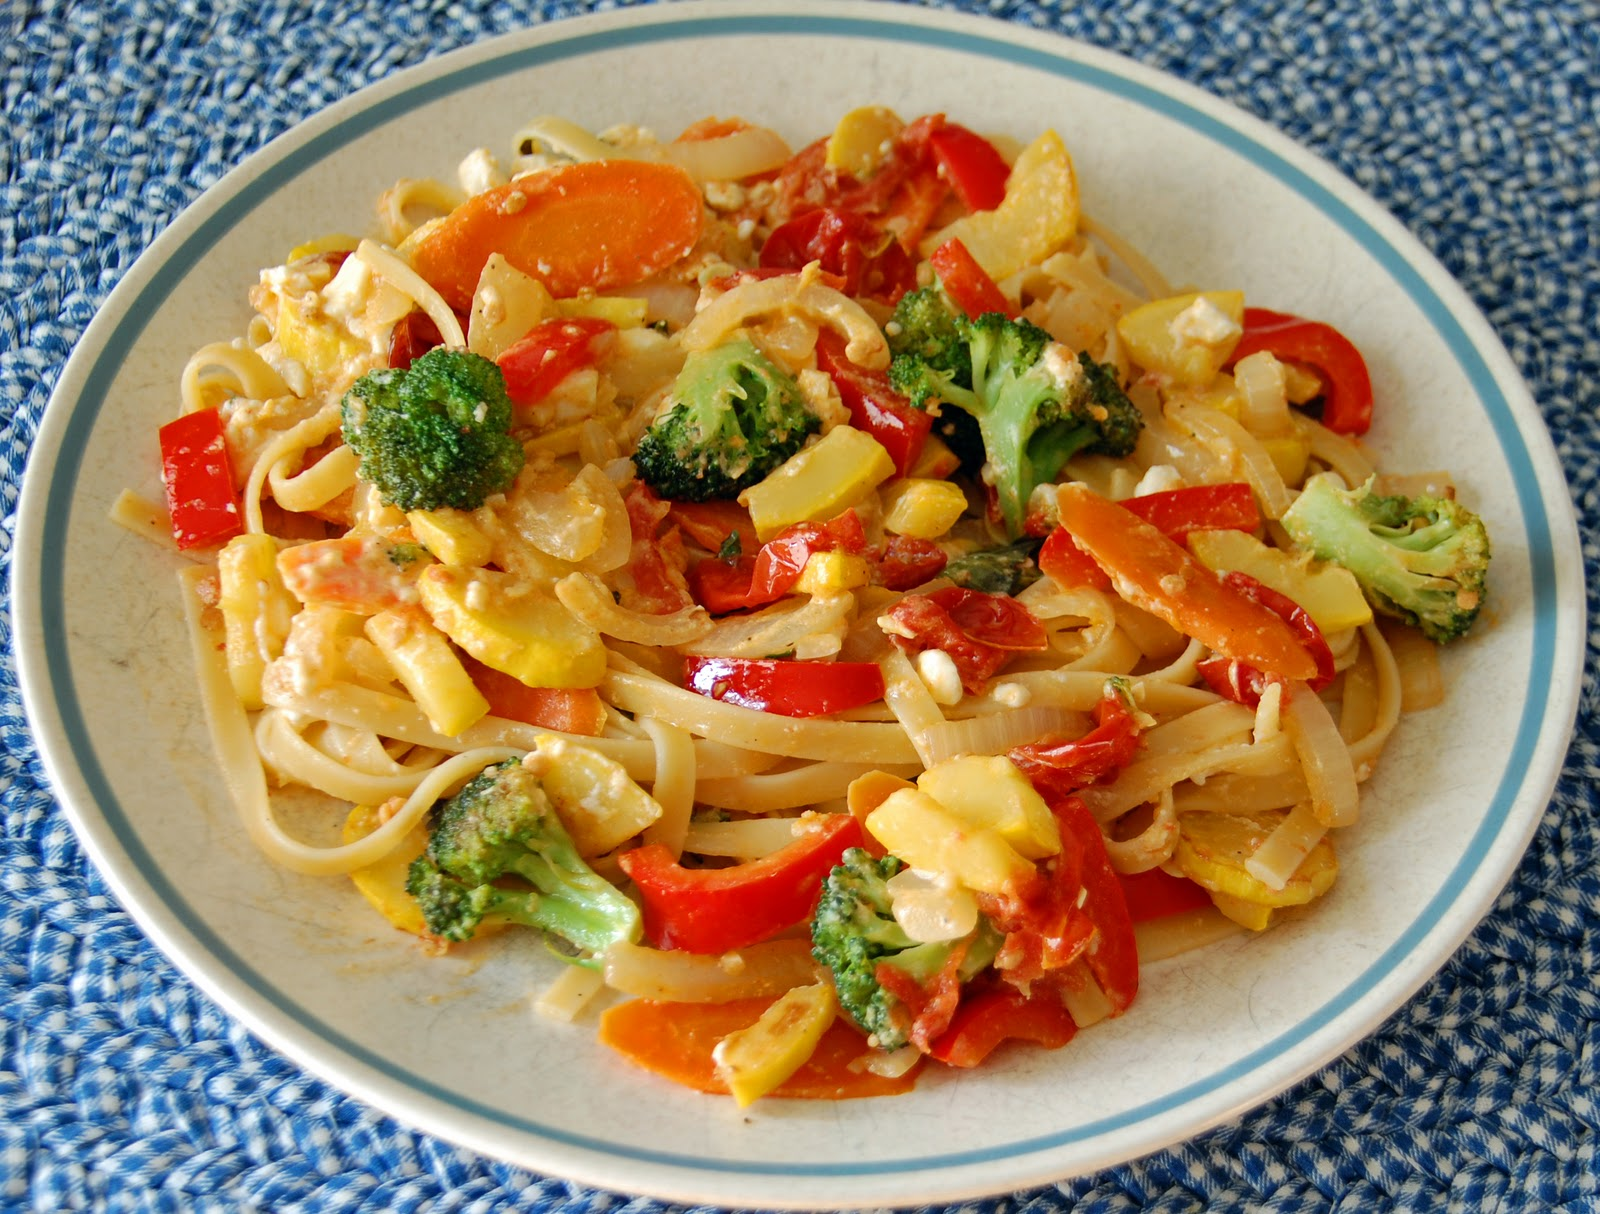 Southern Lady's Recipes: Pasta Primavera